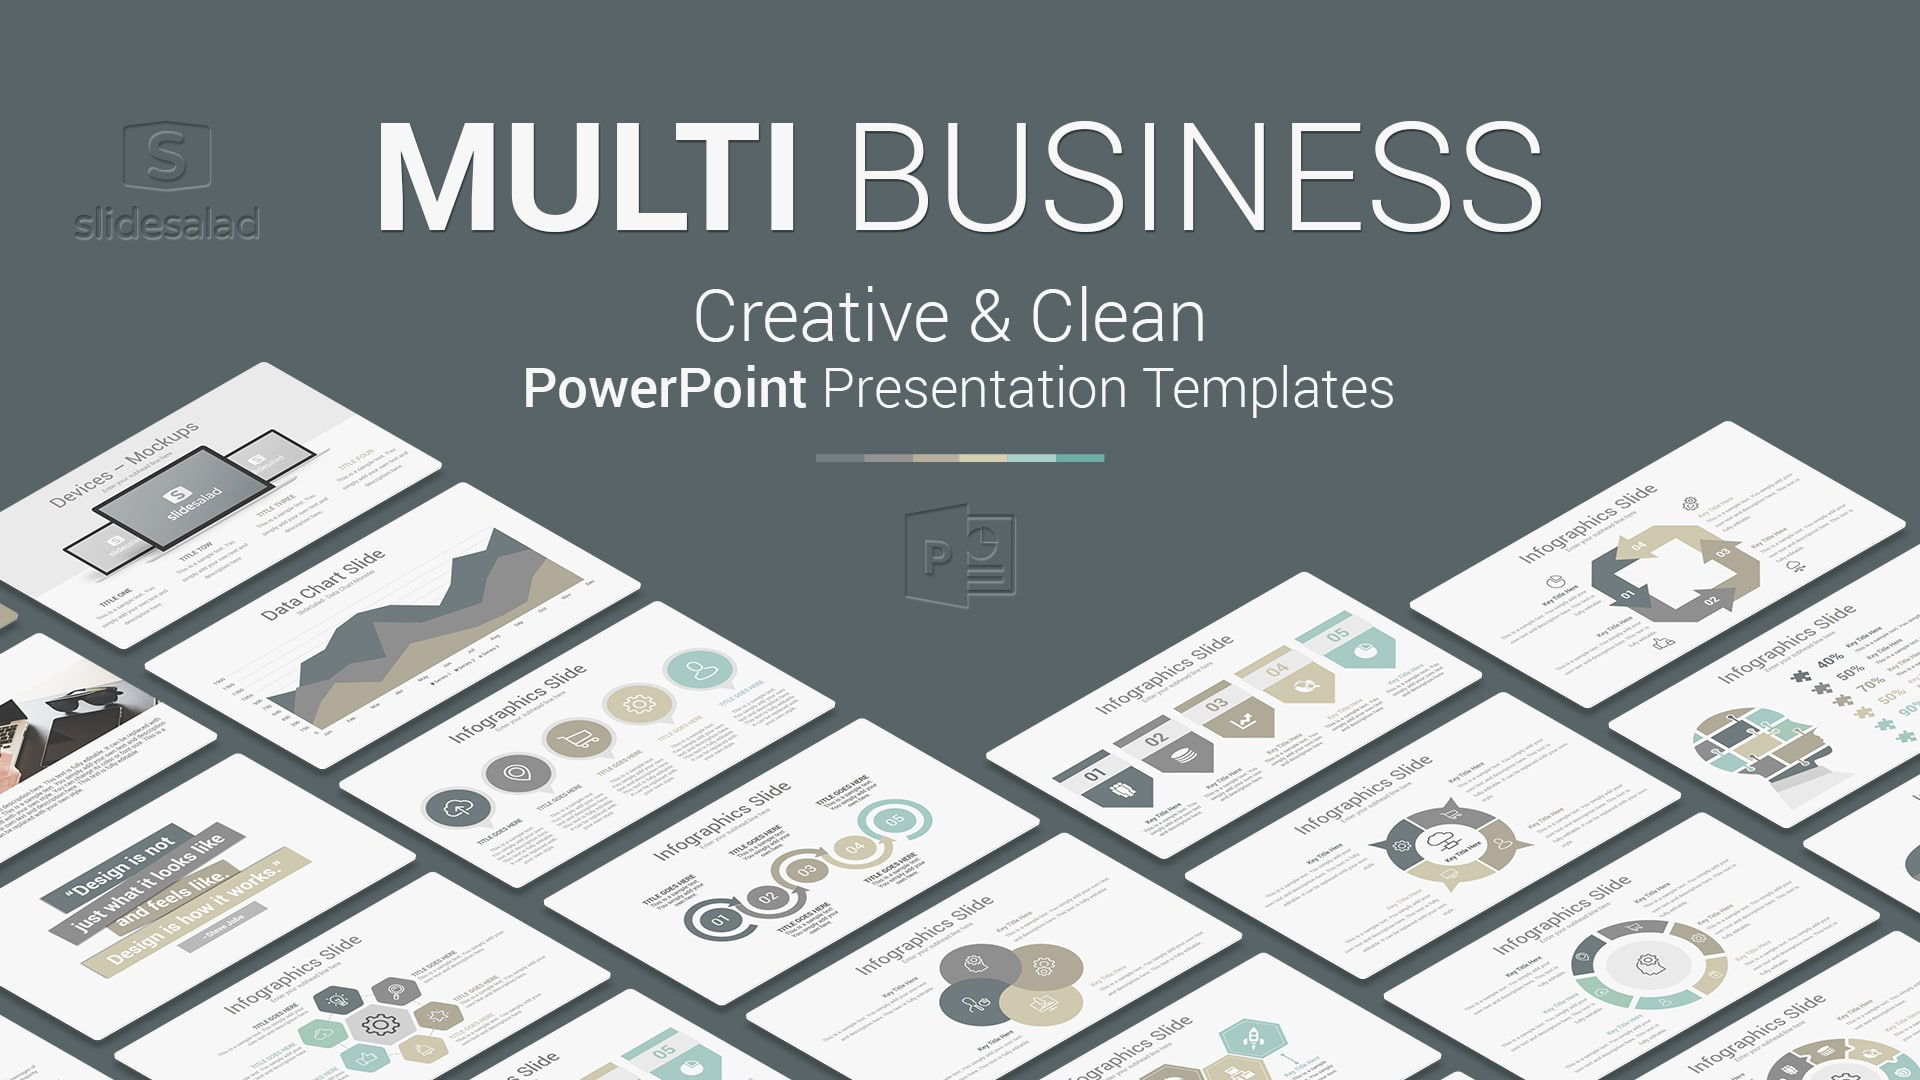 Multi Business PowerPoint Presentation Template – Professional PowerPoint PPT Design